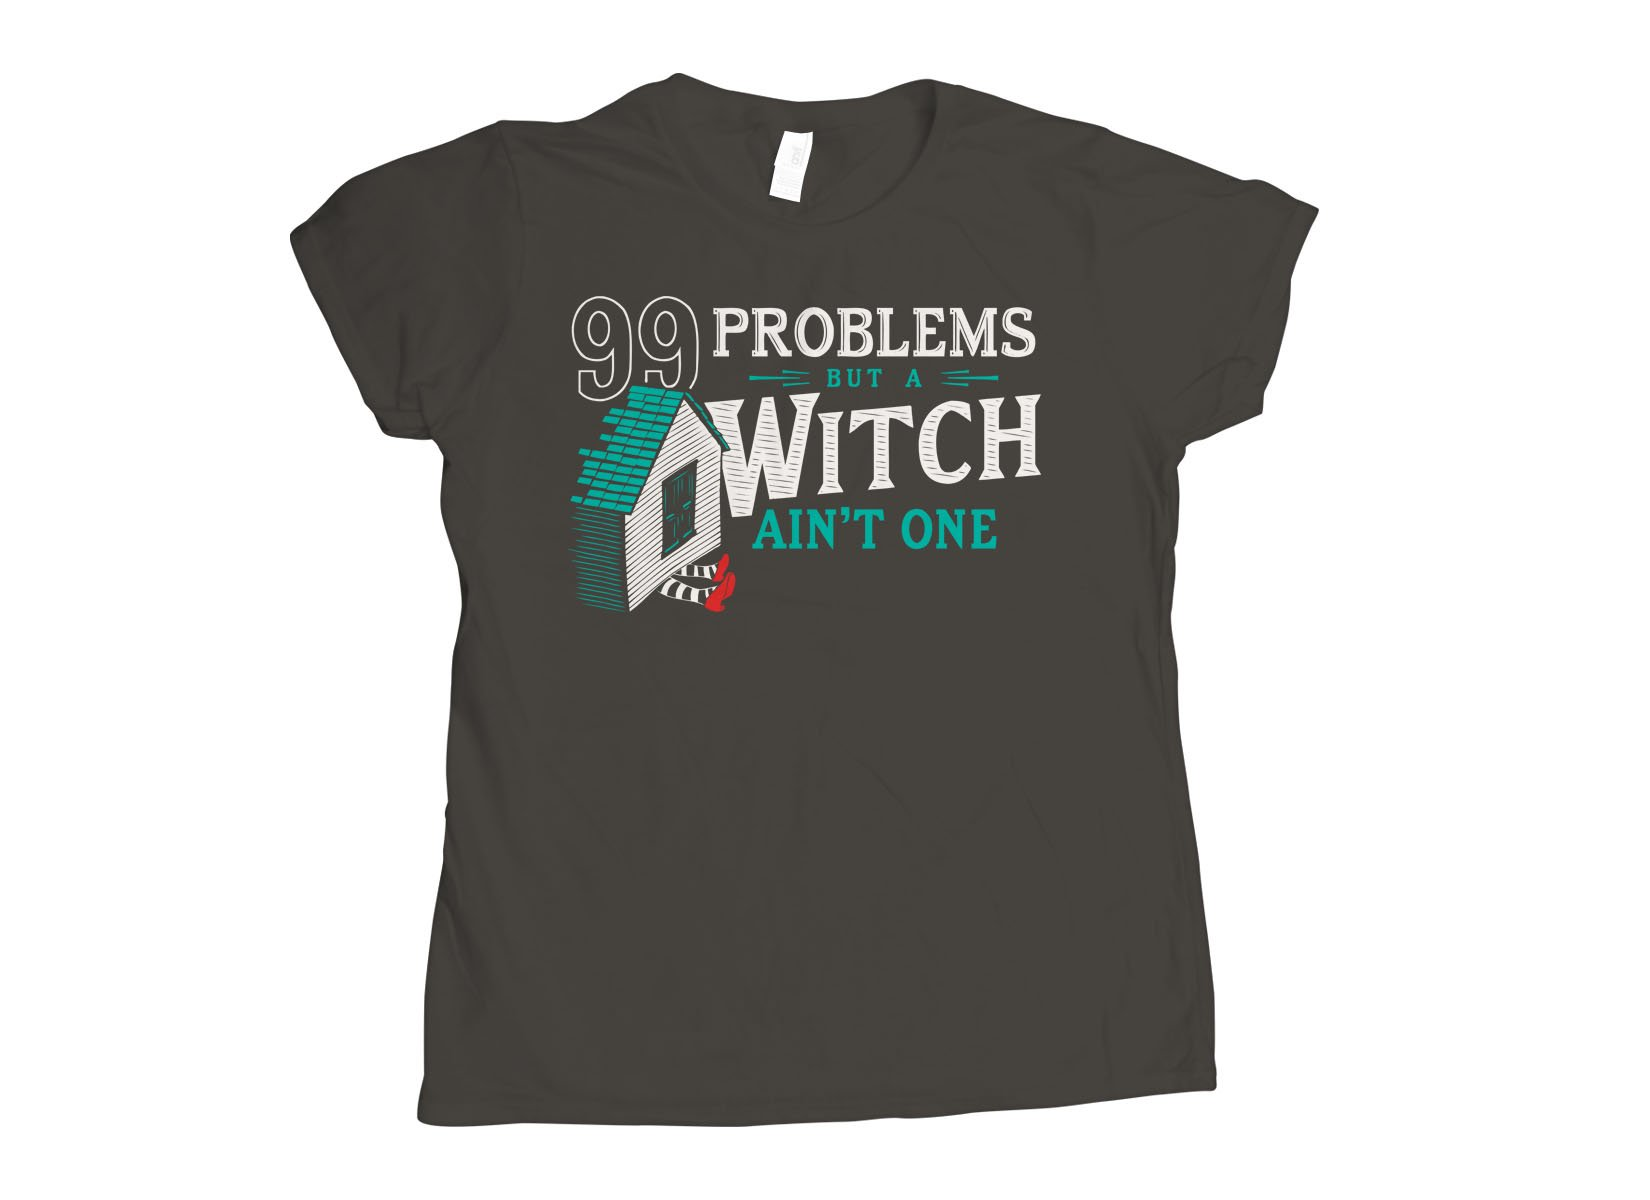 99 Problems But A Witch Ain't One on Womens T-Shirt